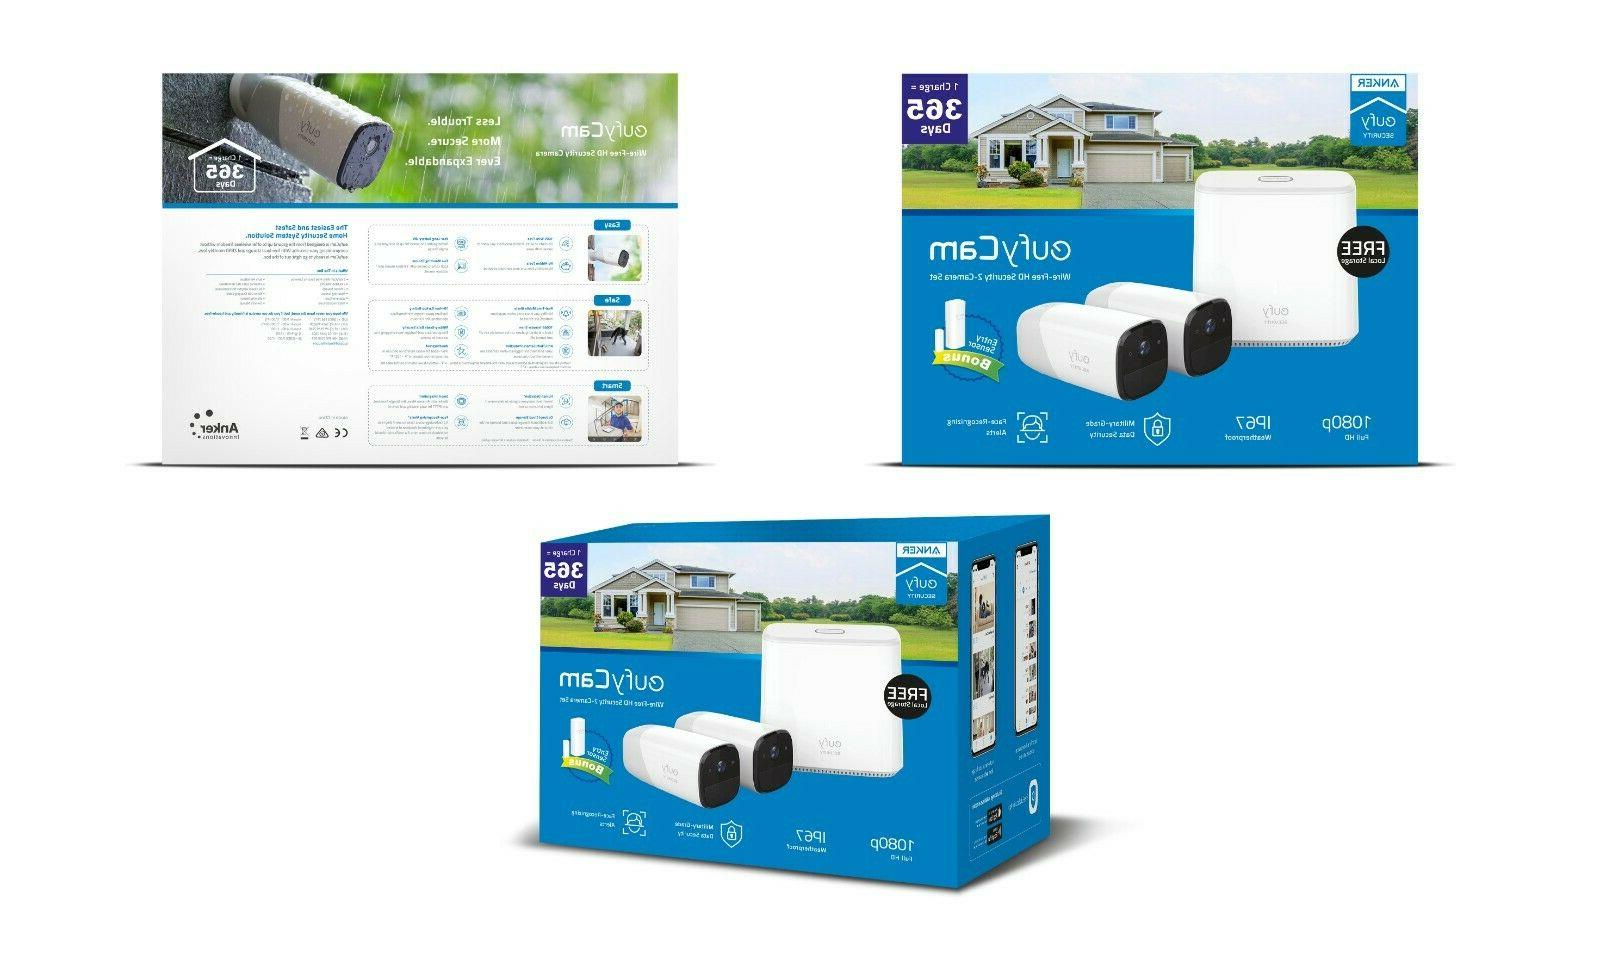 Wireless Home Security Camera System with